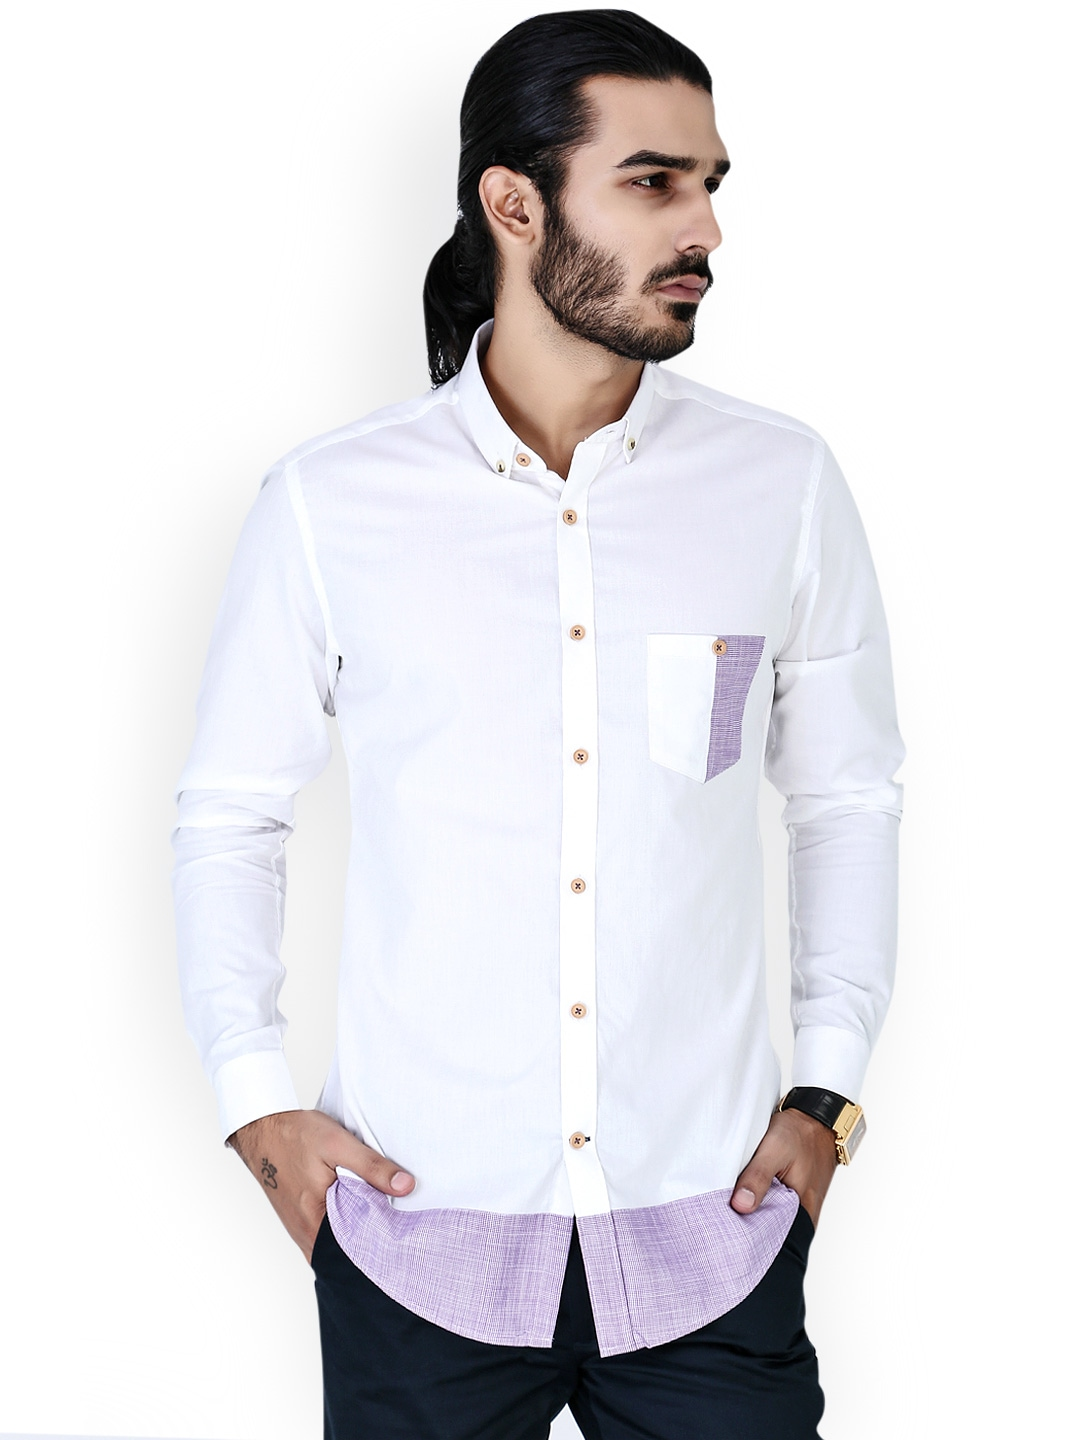 Home clothing men clothing shirts mr button shirts for Slim fit white linen shirt